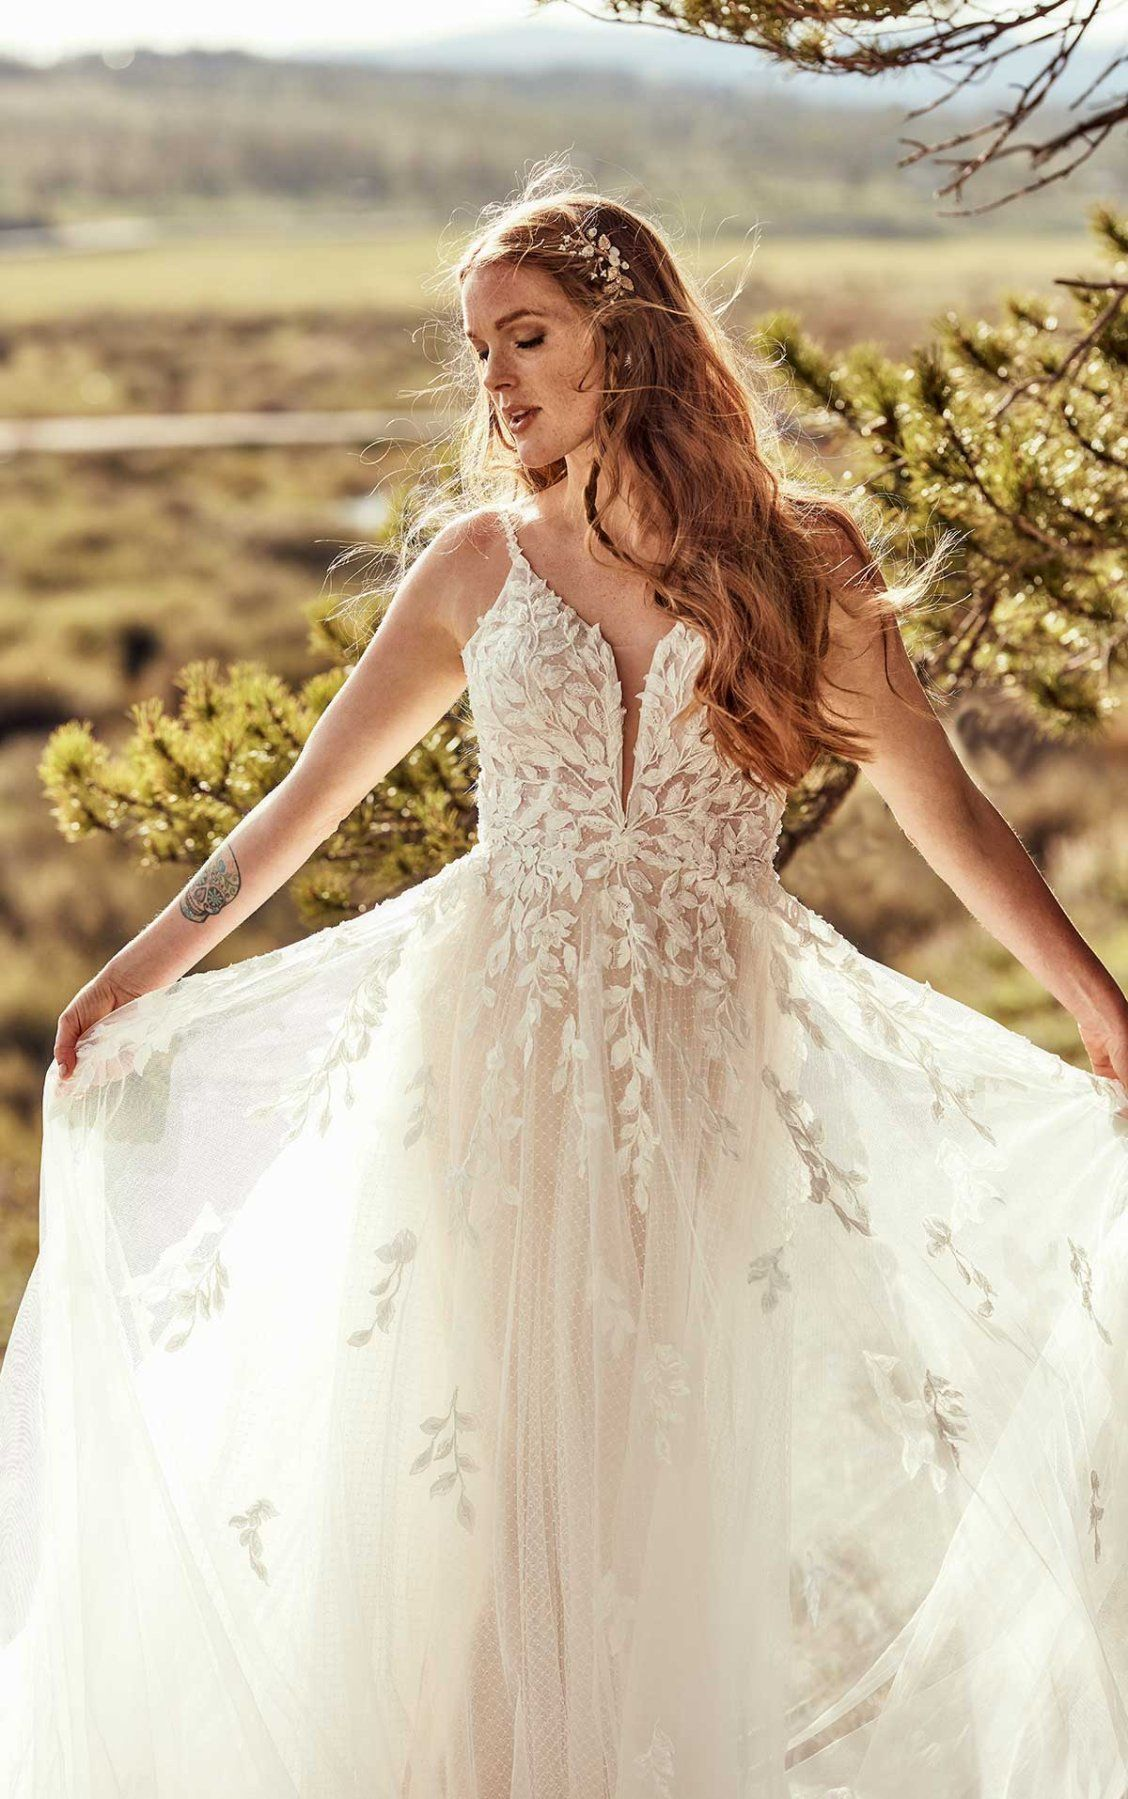 Tulle And Leaf Lace Wedding Dress All Who Wander Wedding Dresses Lace Ball Gown Wedding Dress Tulle Wedding Dress